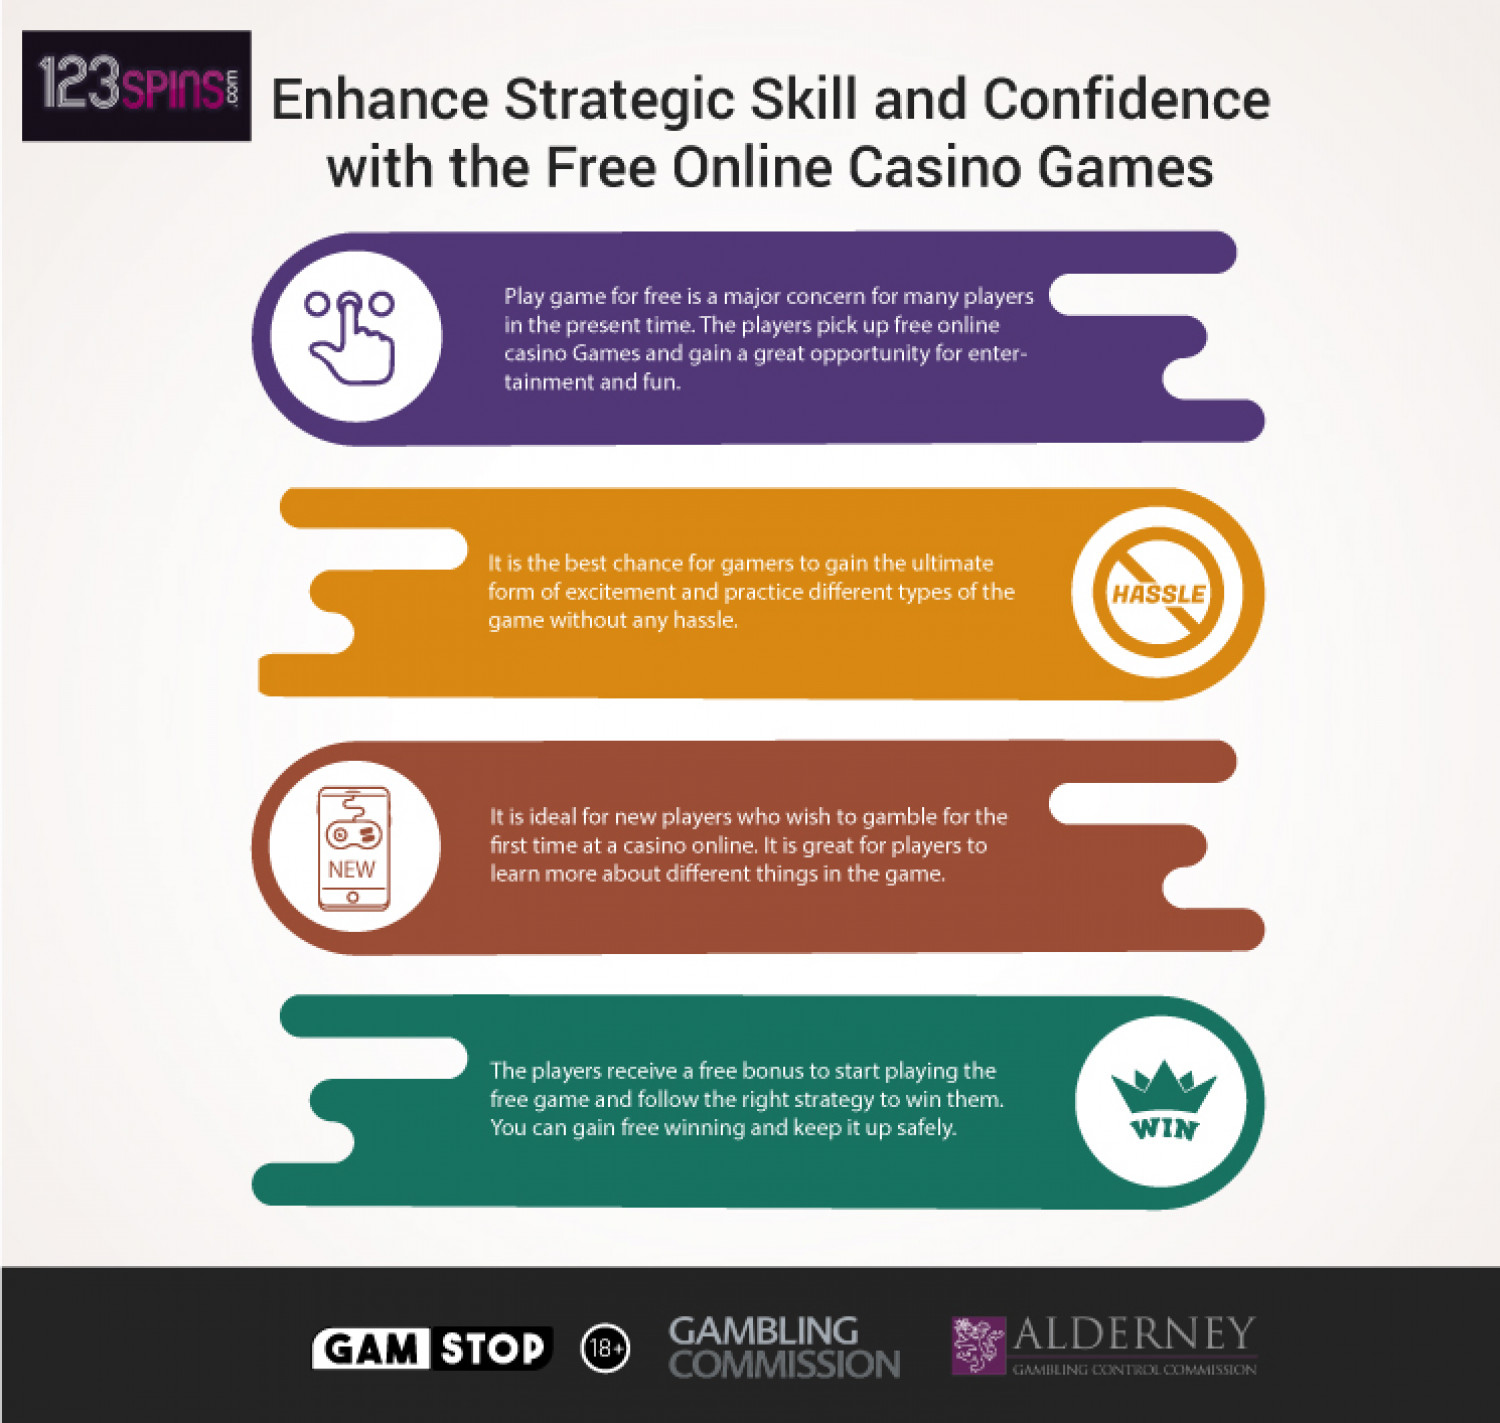 Enhance Strategic Skill and Confidence with the Free Online Casino Games Infographic